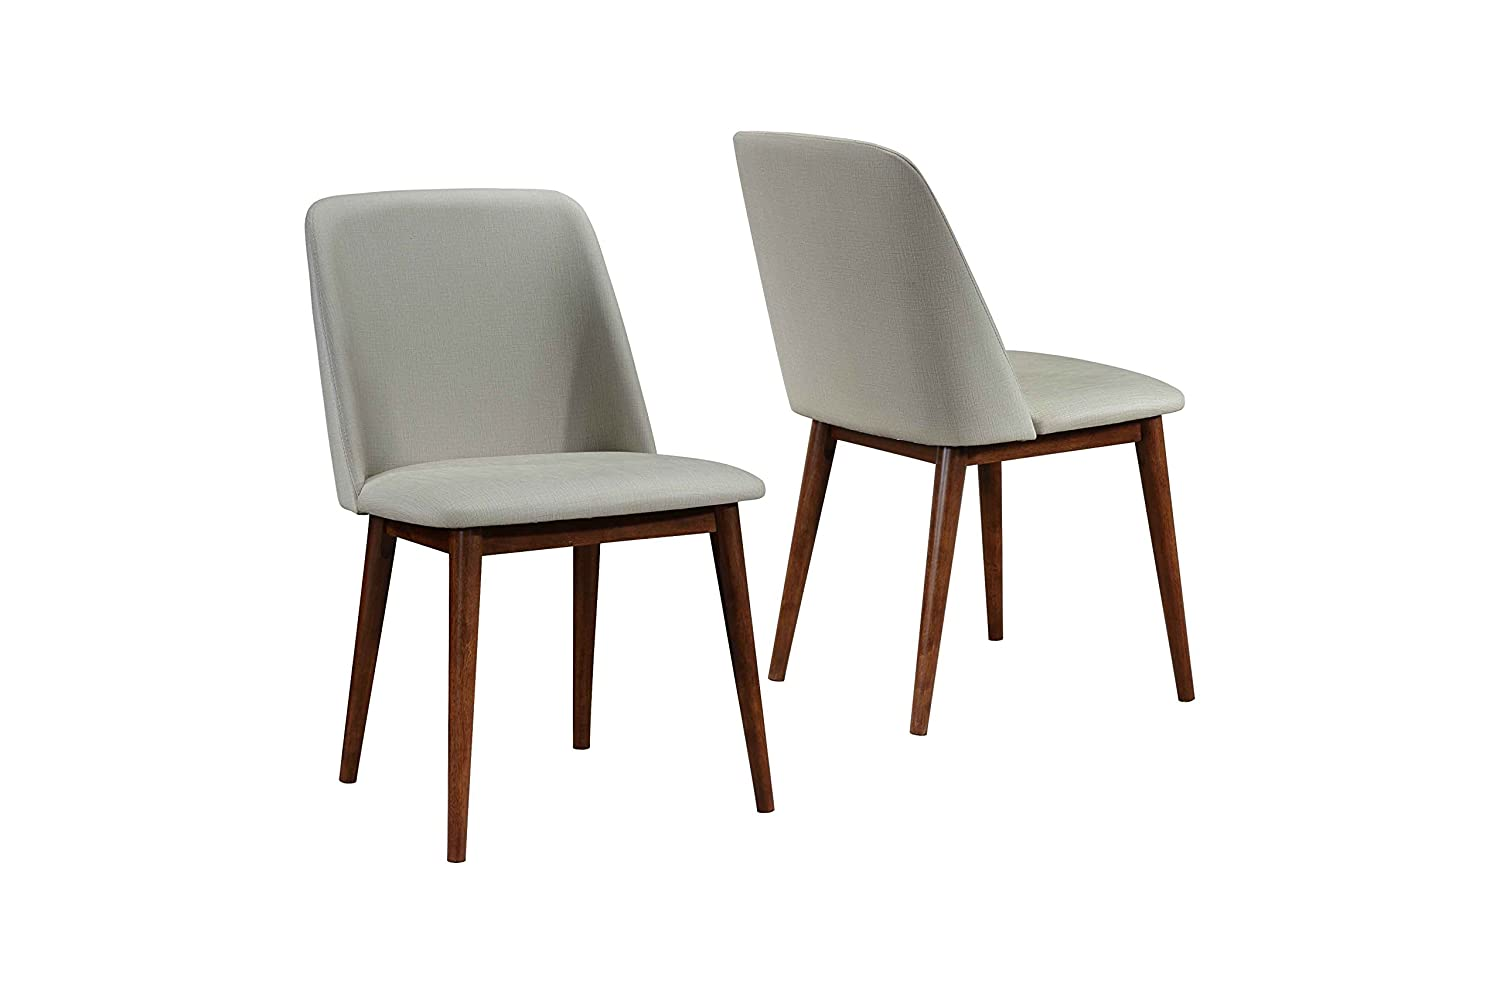 Amazing Barett Dining Chairs Grey And Chesnut Set Of 2 Gamerscity Chair Design For Home Gamerscityorg